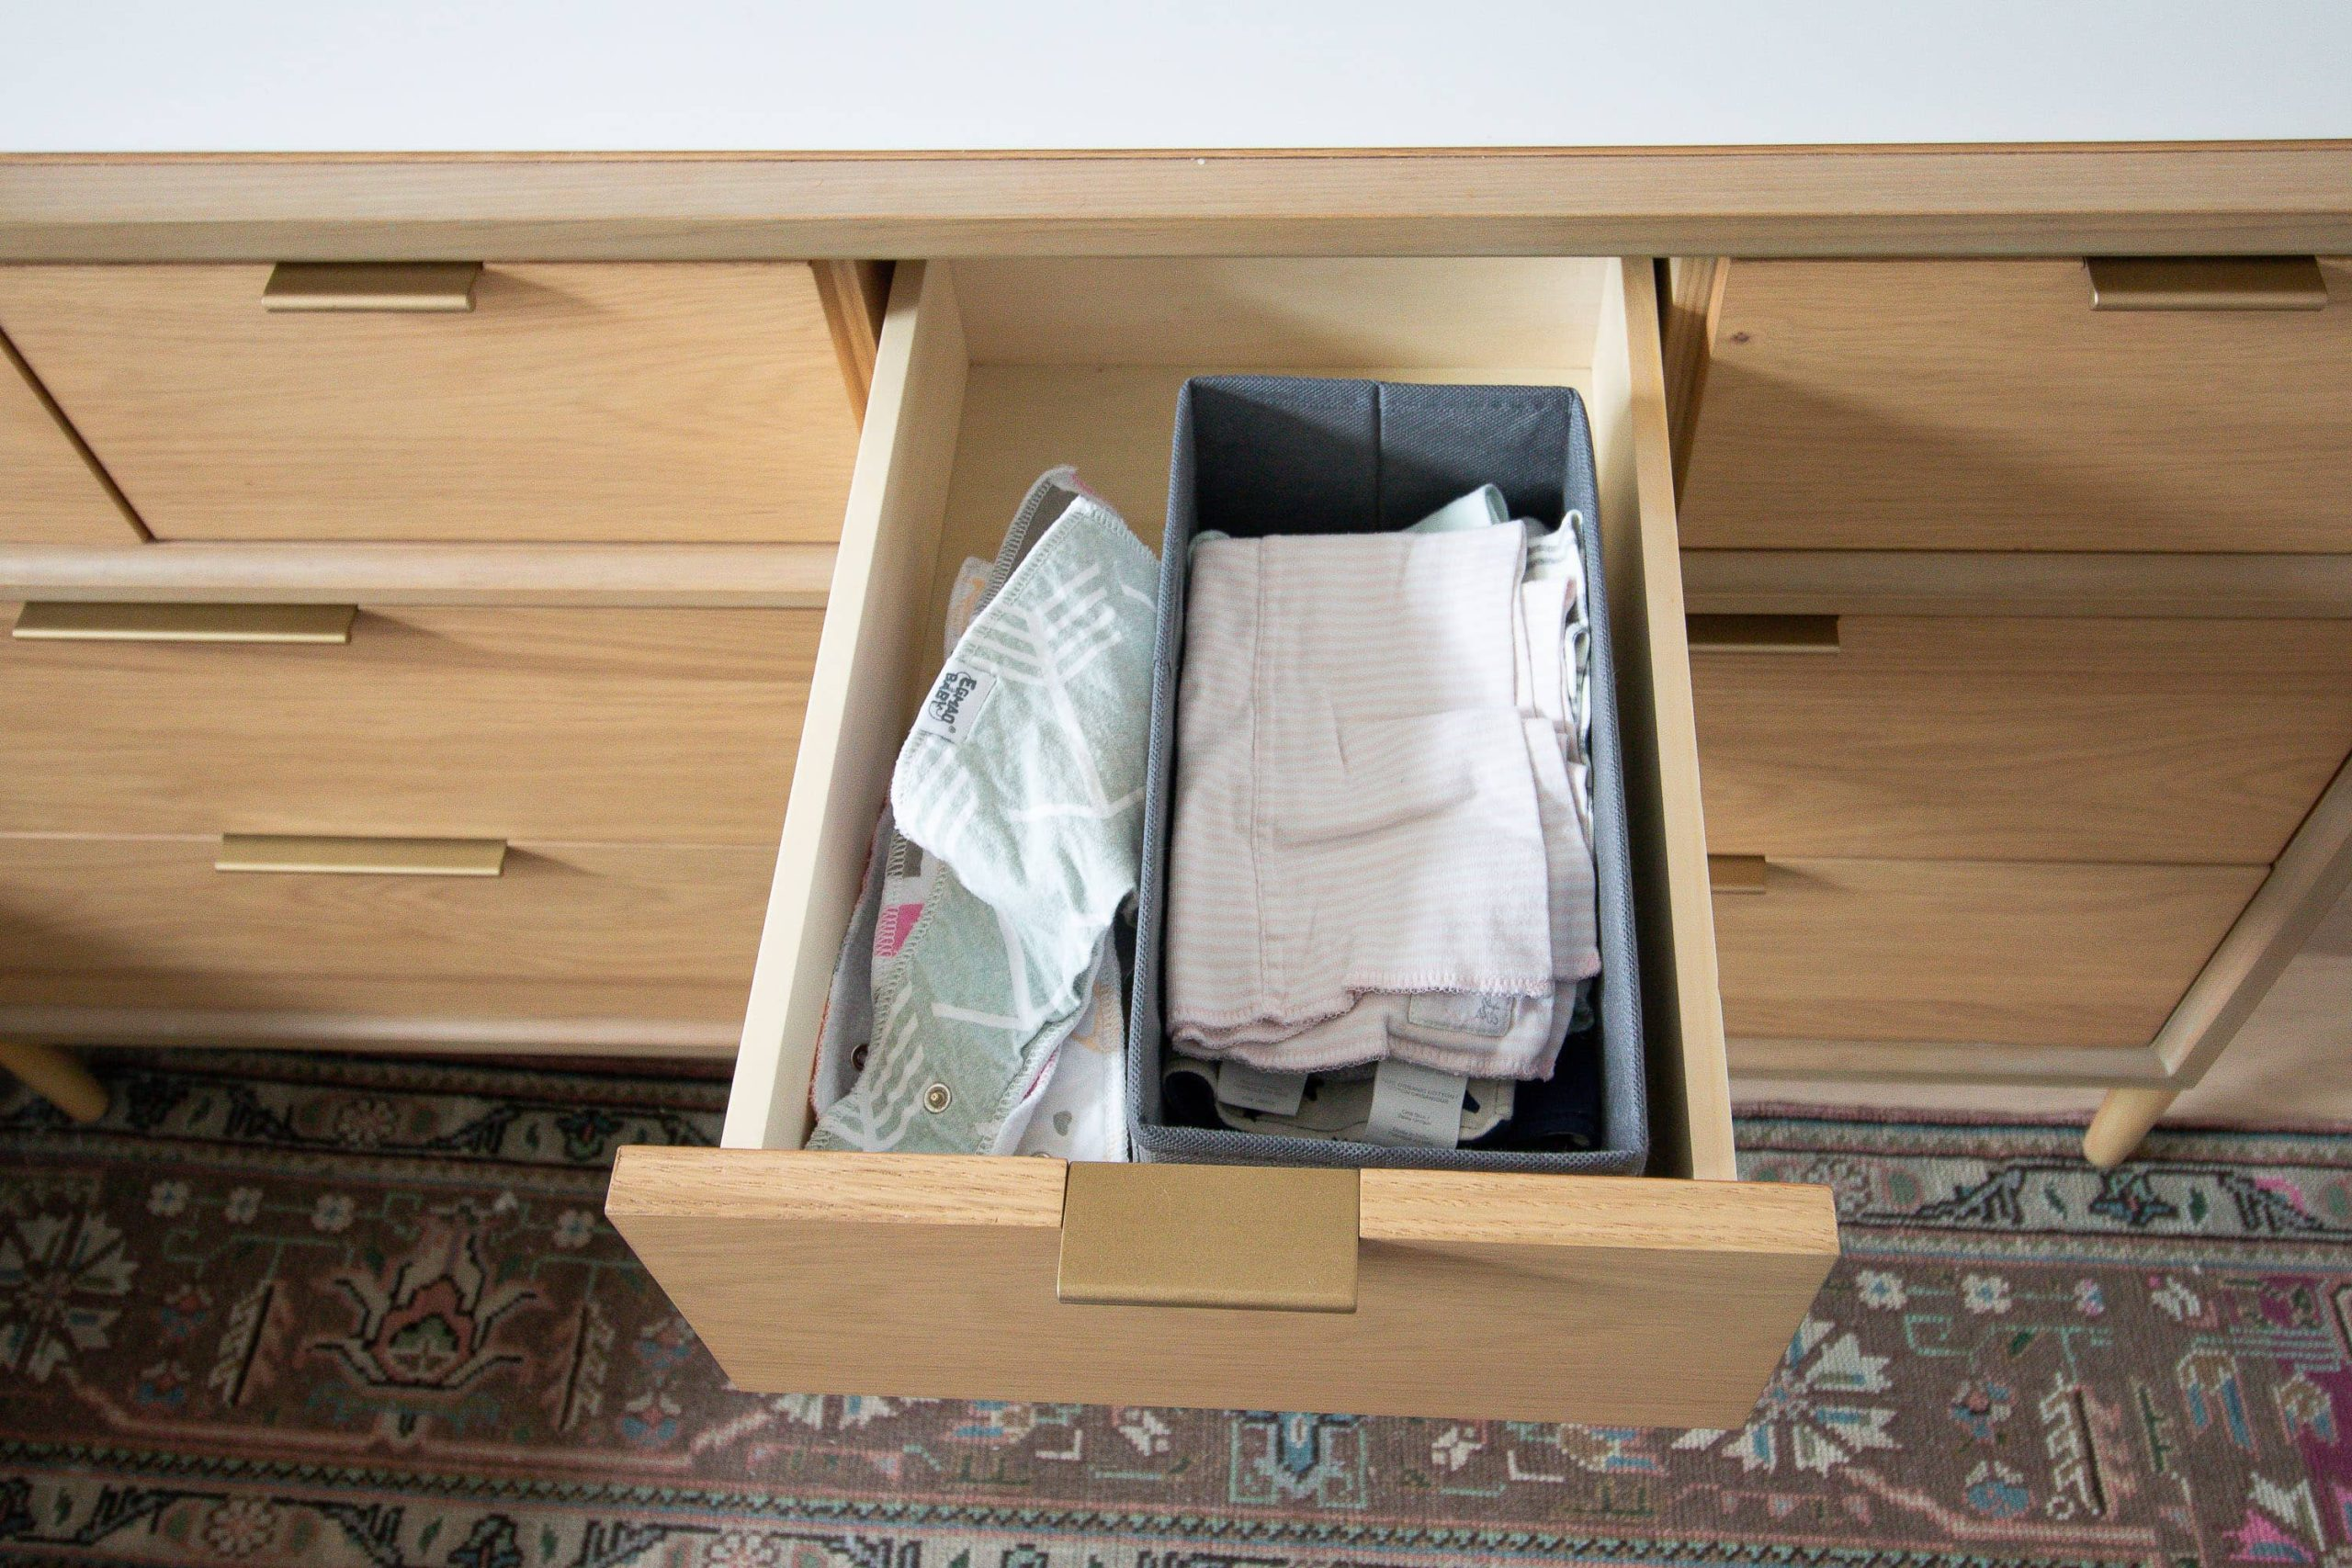 Keeping bibs and wipes organized in a dresser